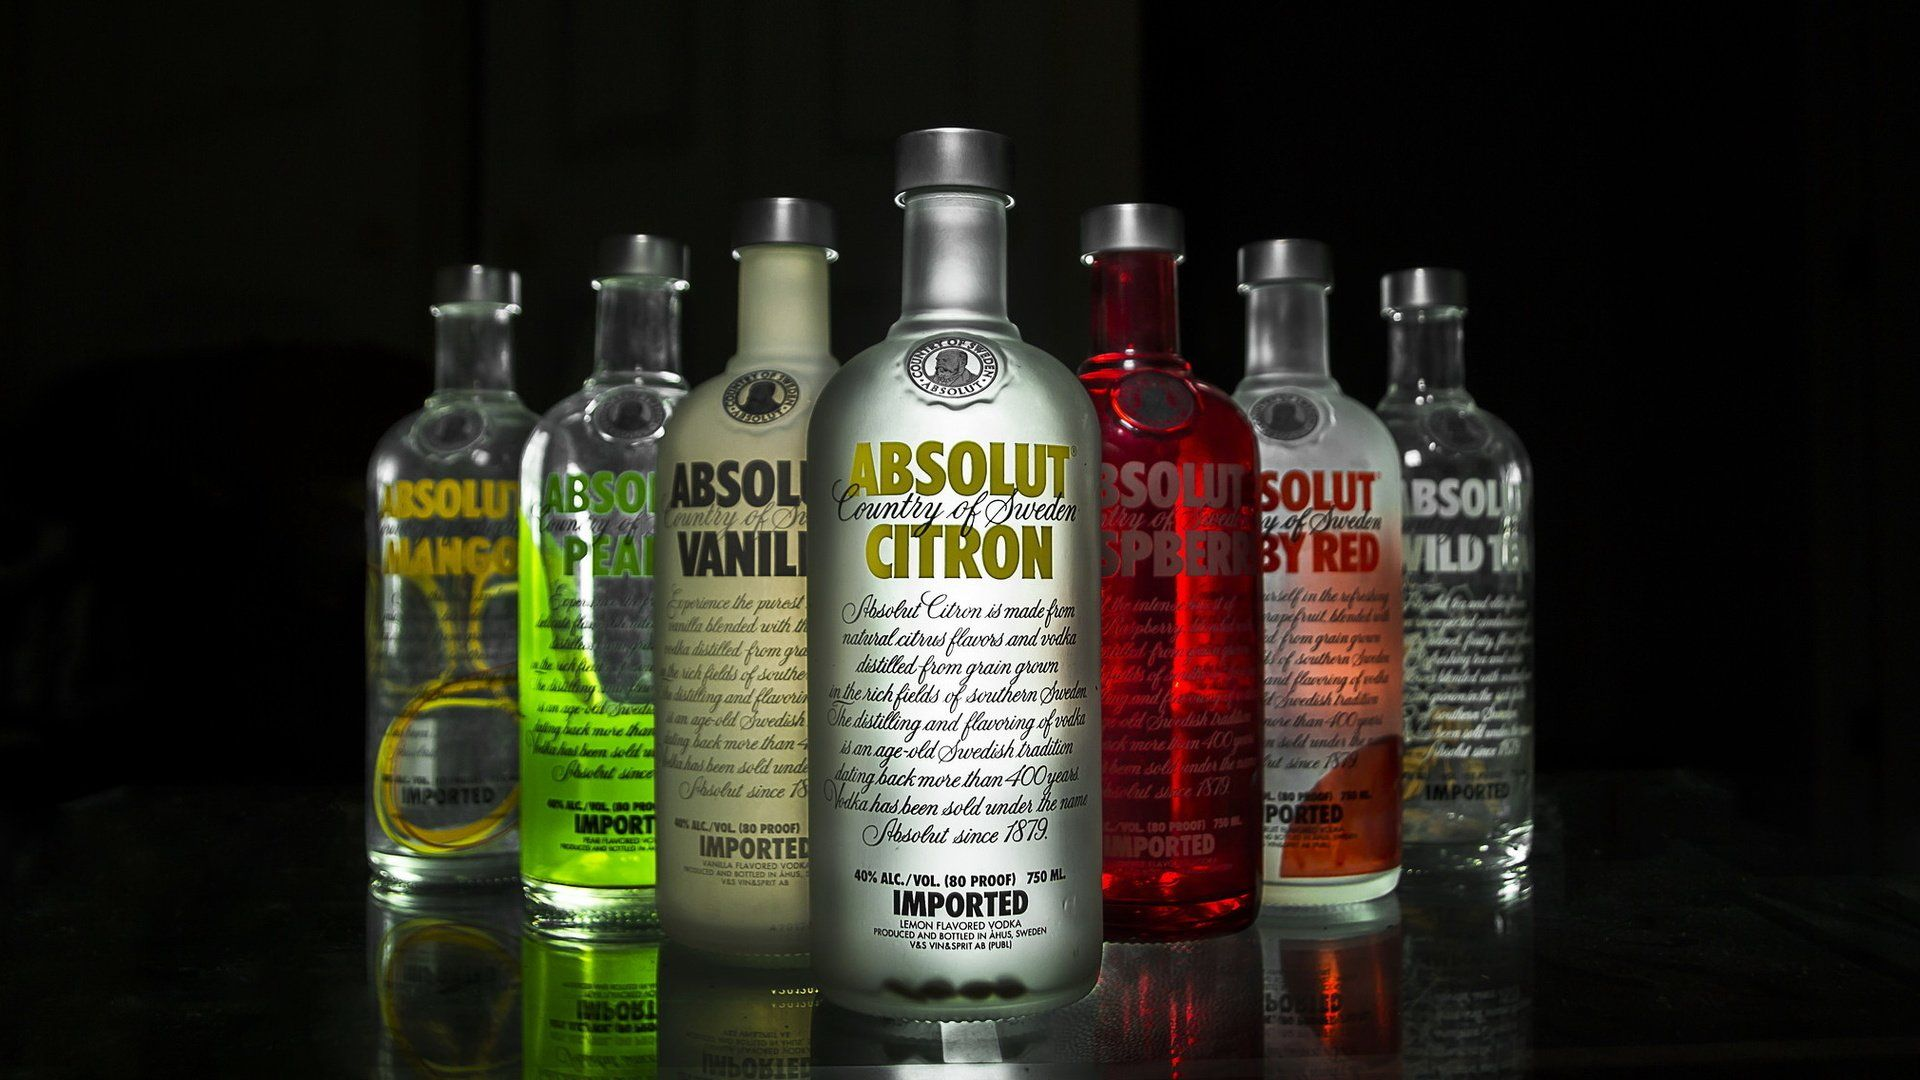 Absolut Vodka Flavors, Country Of Origin